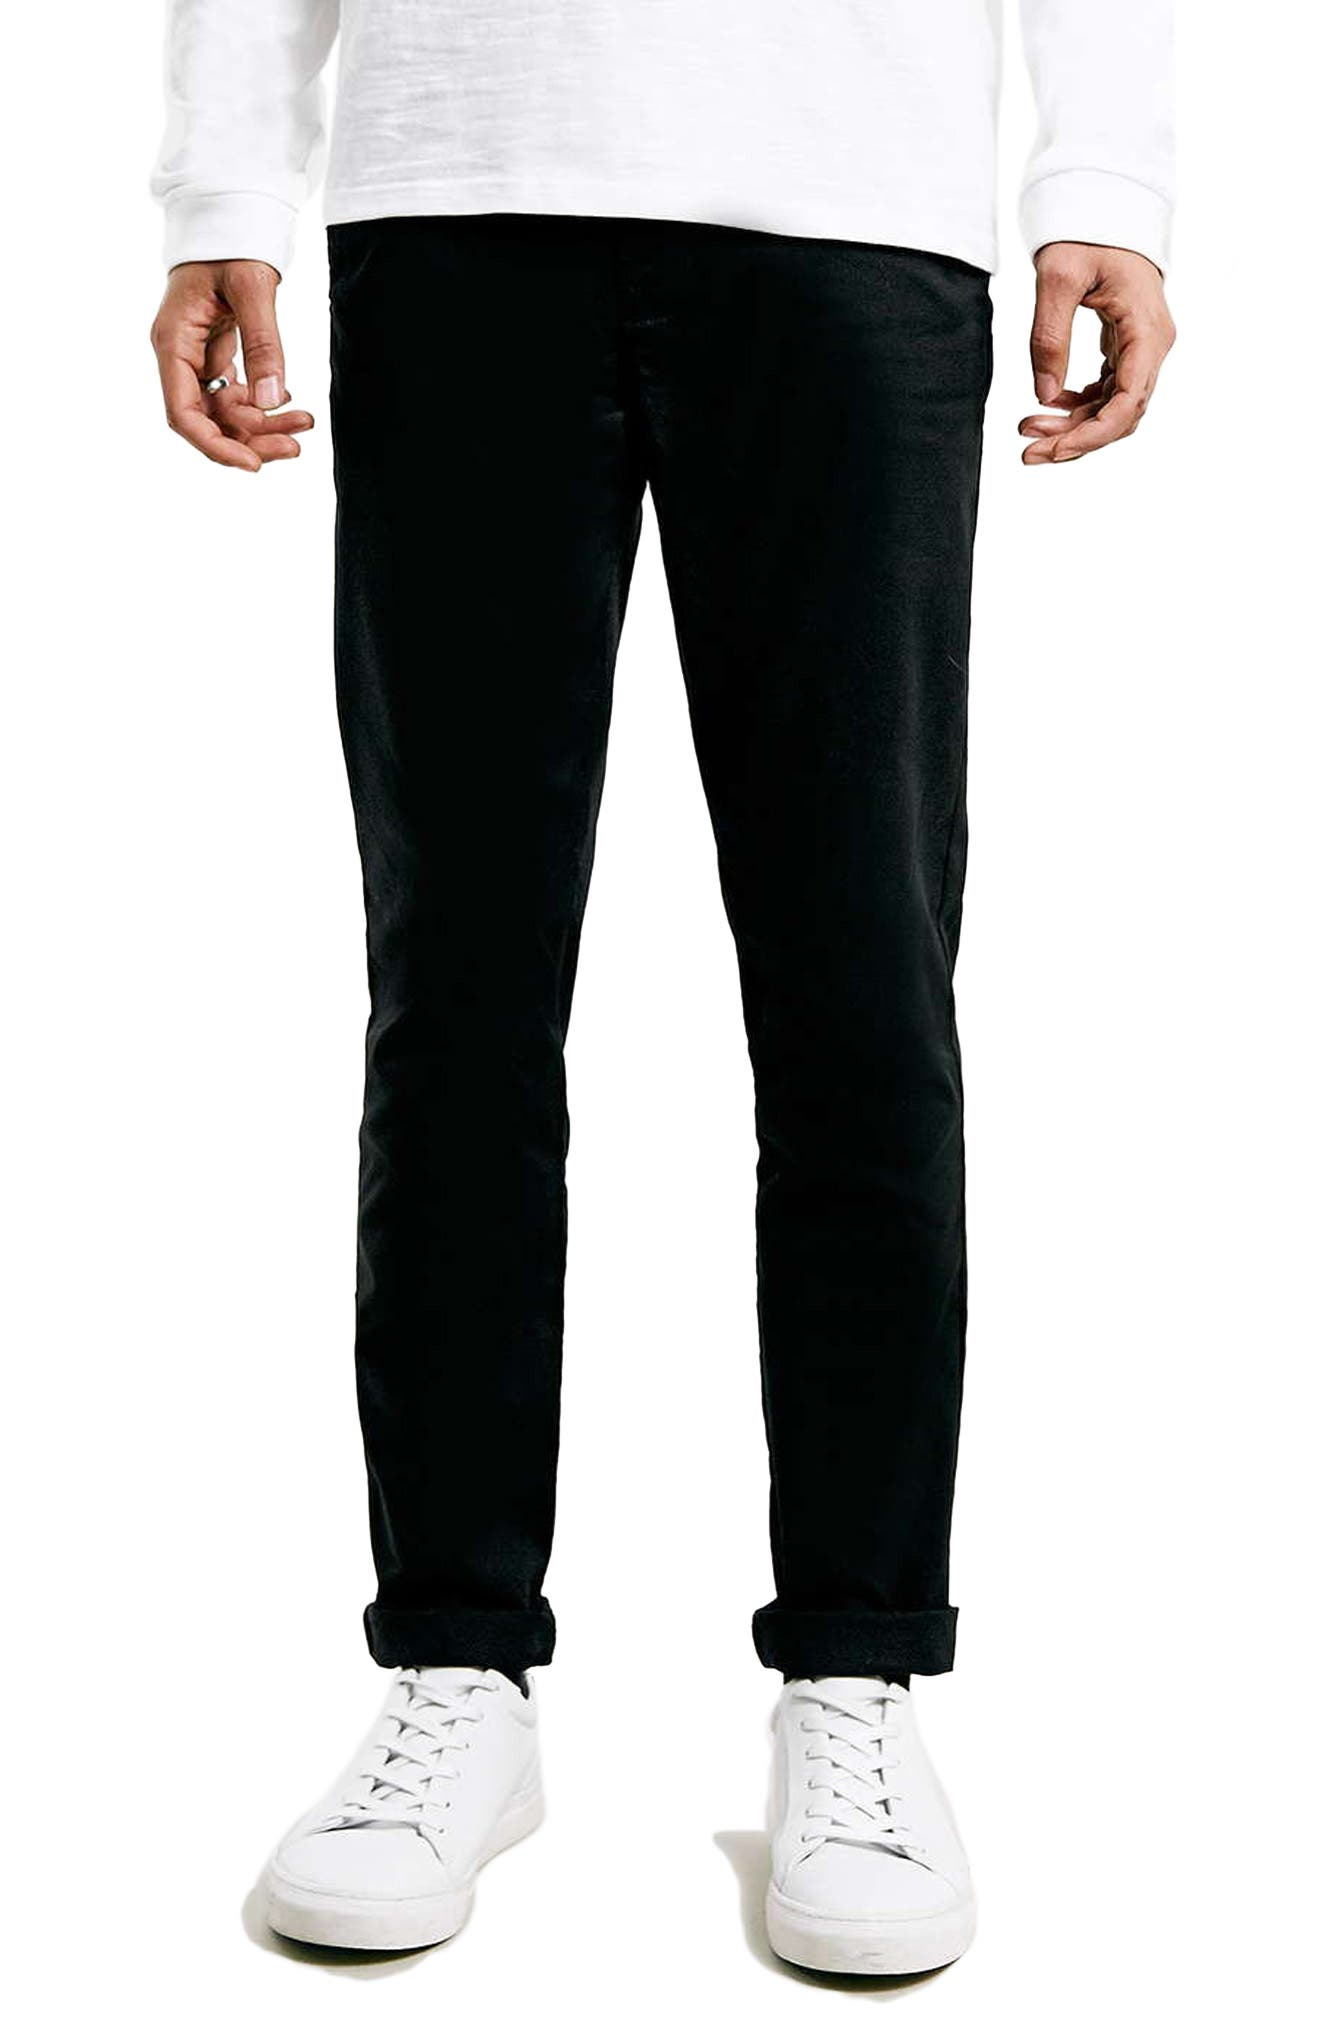 TOPMAN, Stretch Skinny Fit Chinos, Main thumbnail 1, color, BLACK